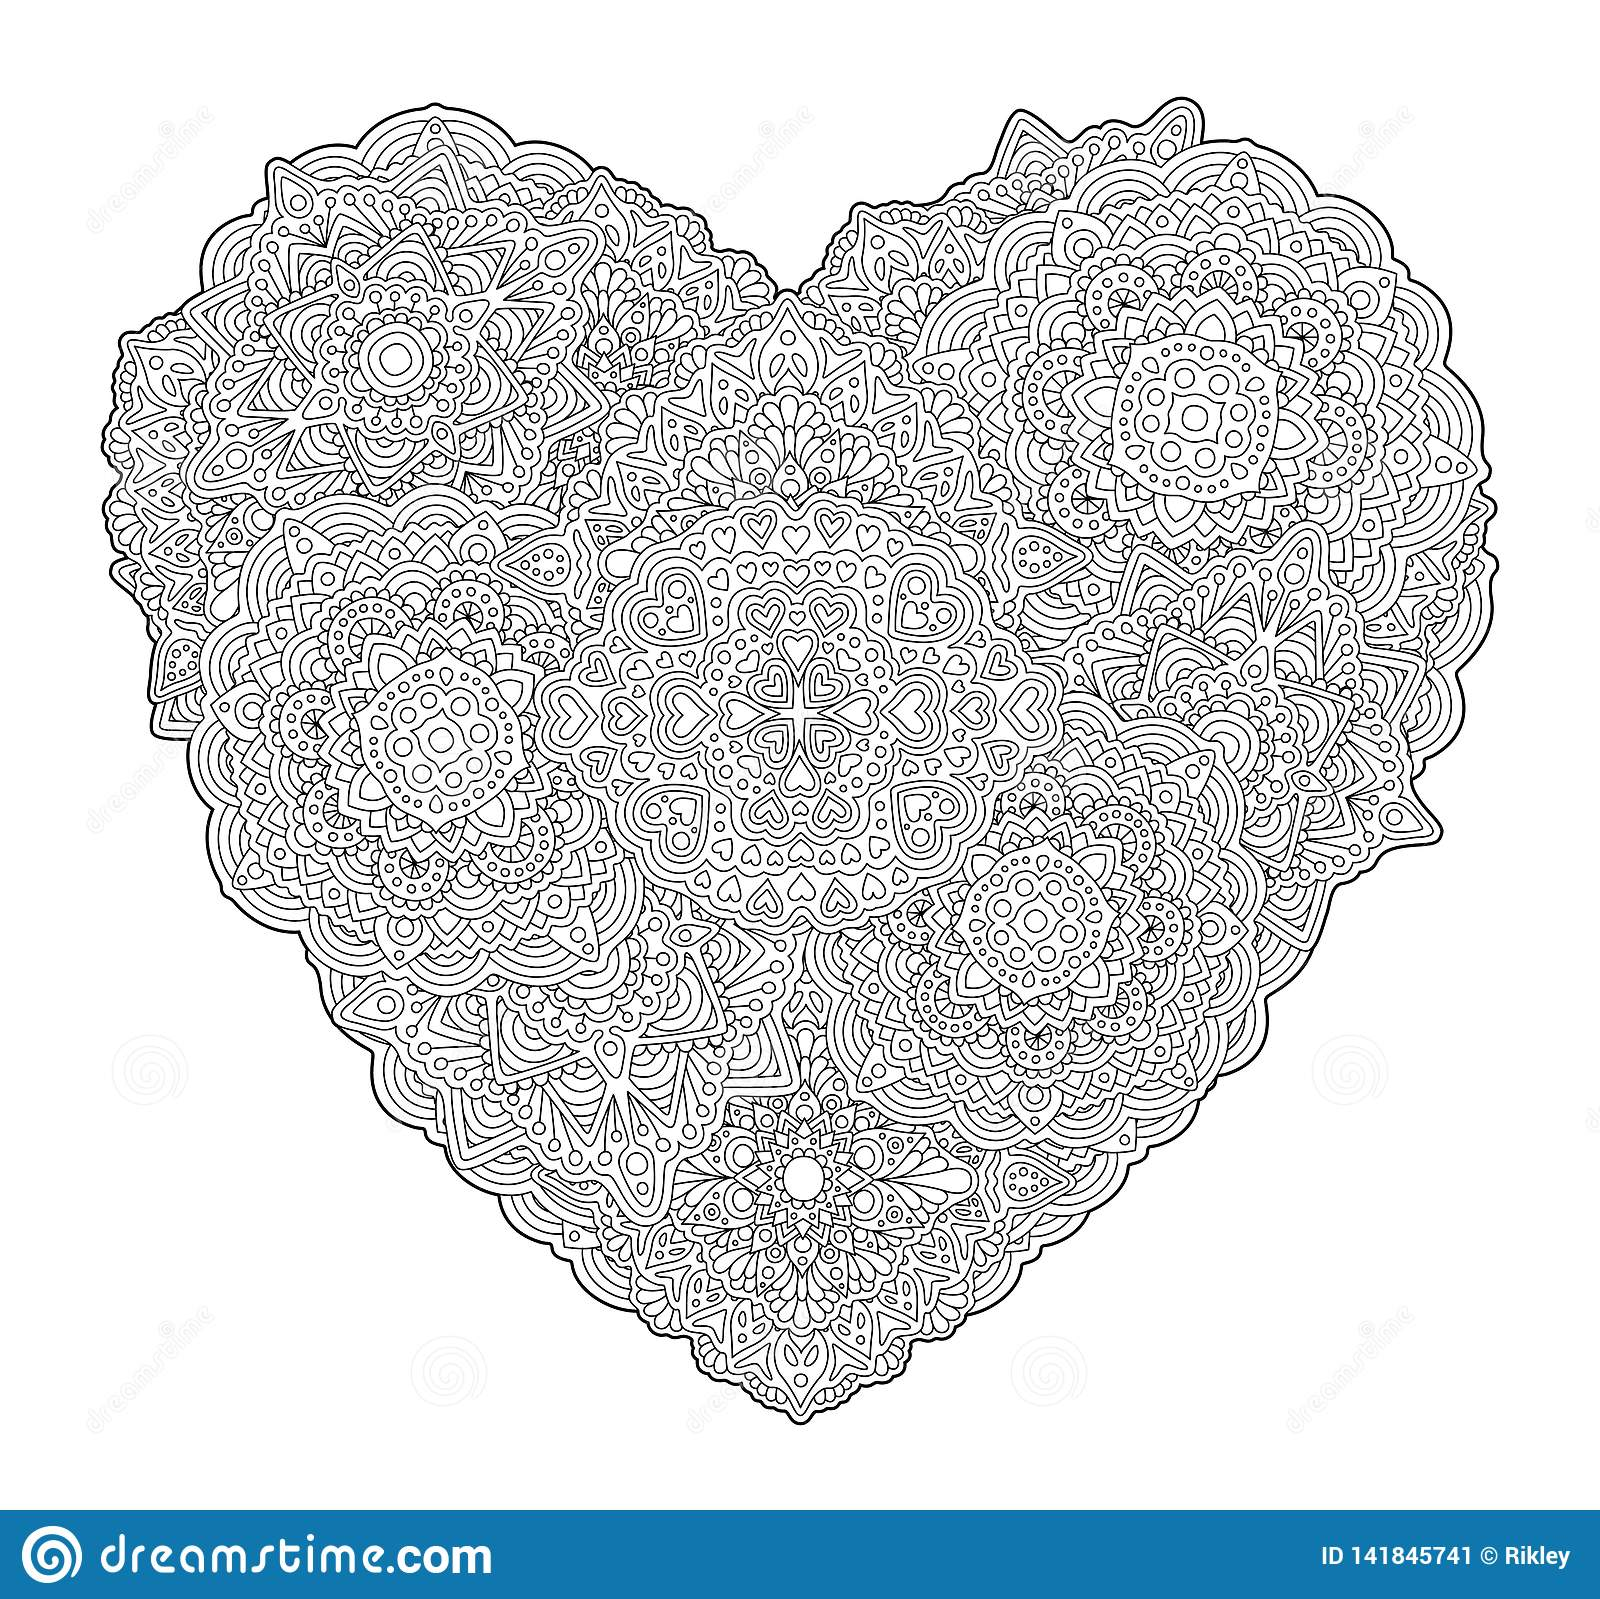 Detailed Coloring Book Page With Shape Of Heart Stock Vector Illustration Of Emotion Feelings 141845741